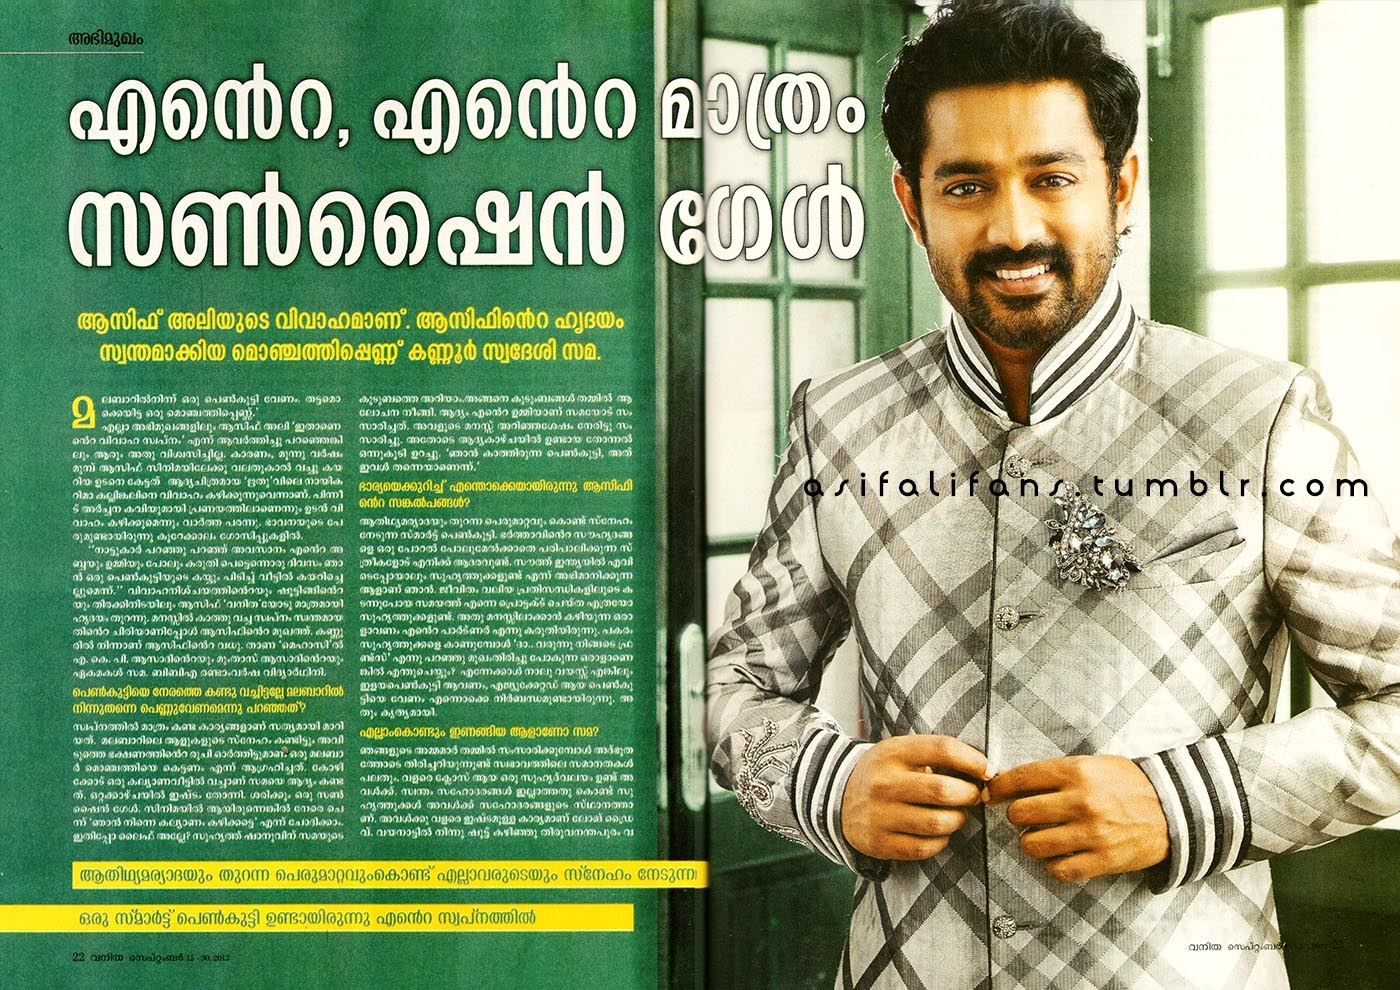 ... Blog :::: Vanitha Magazine September Issues About Asif's Engagement